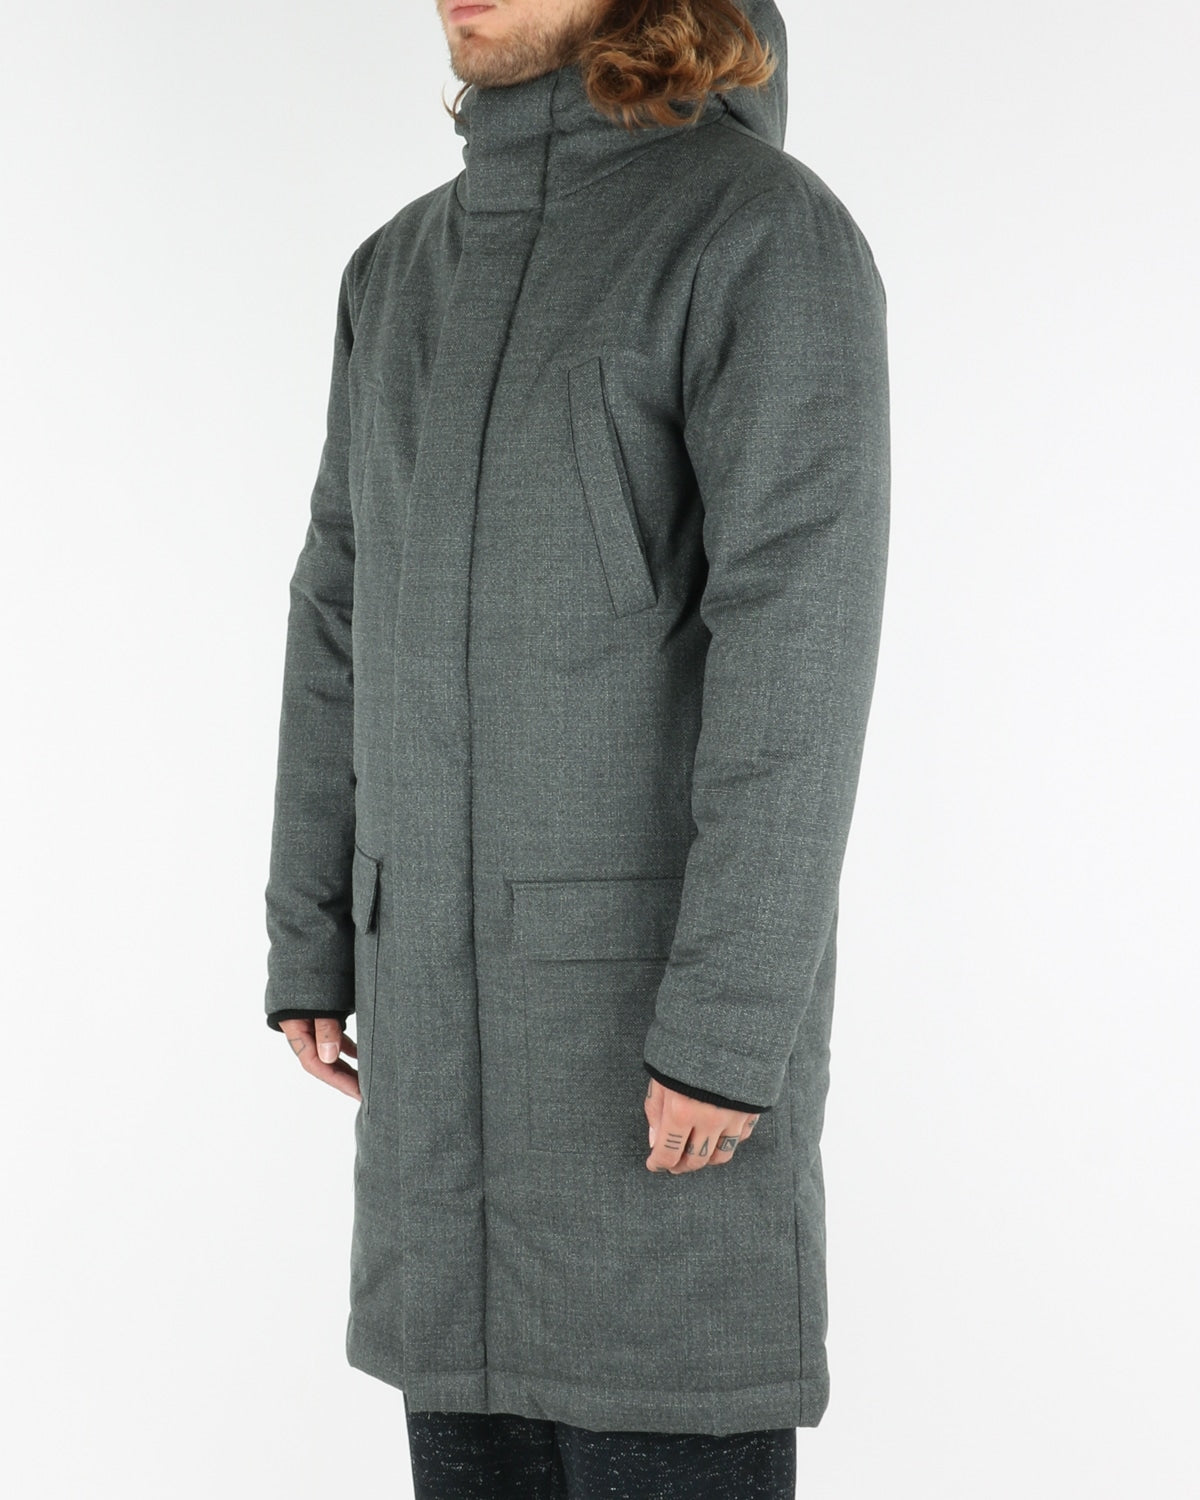 journal clothing_million coat_grey_view_3_5